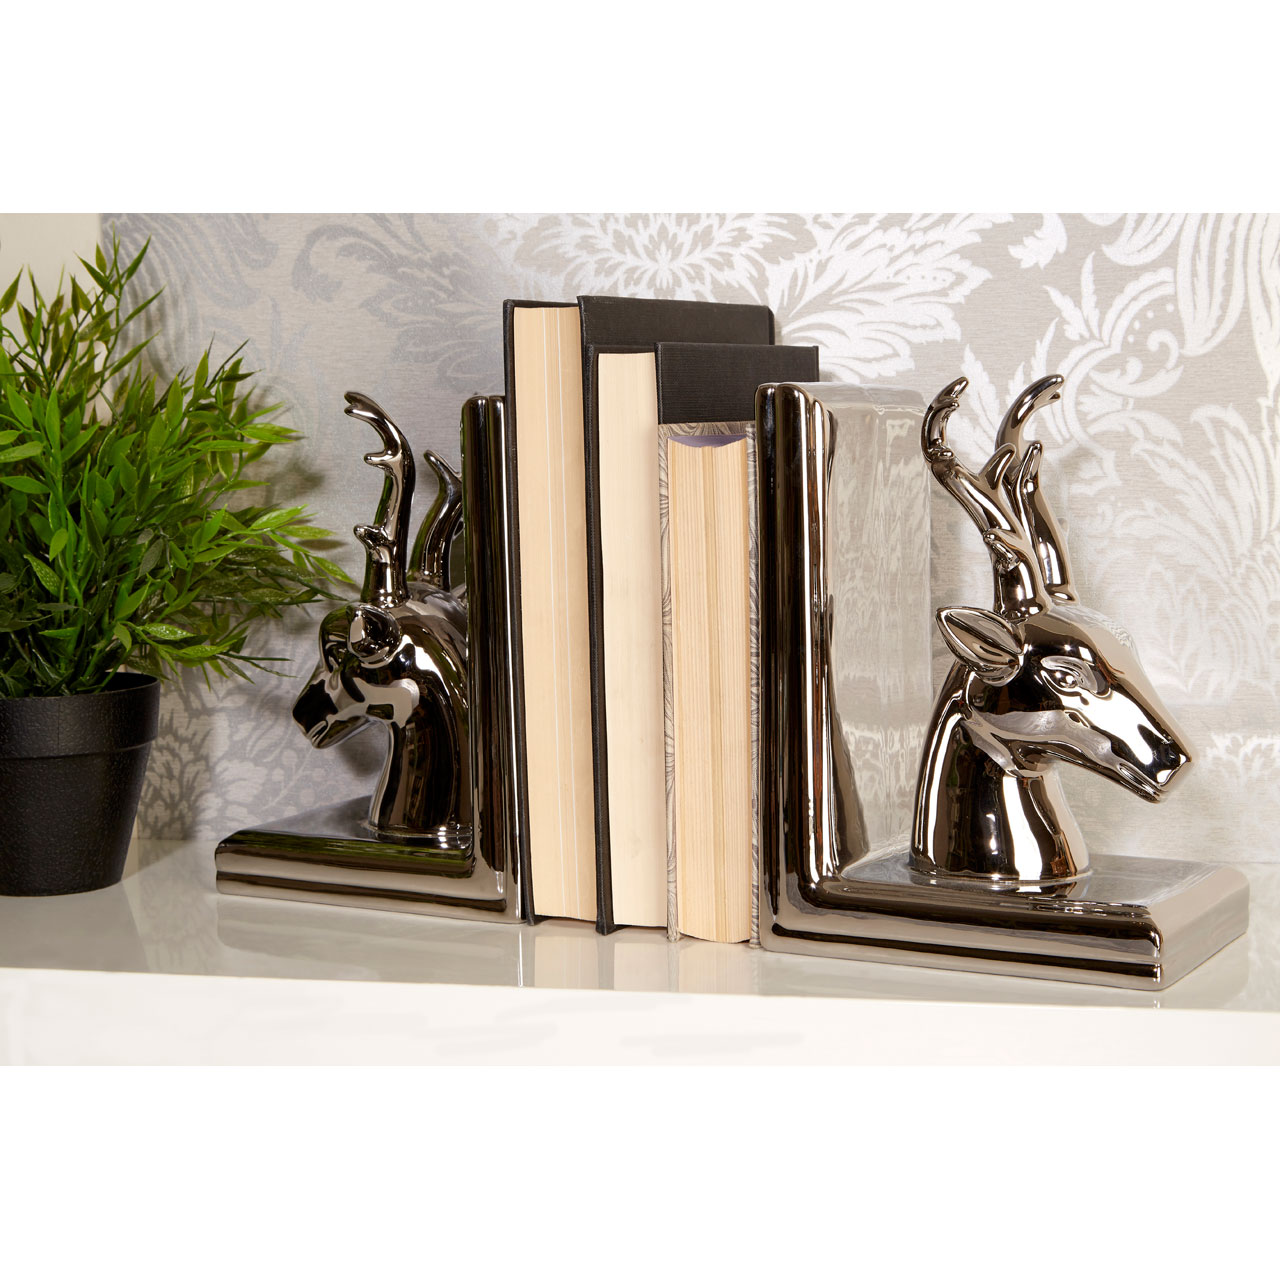 Premier housewares stag bookends silver dolomite set of 2 ebay - Stag book ends ...